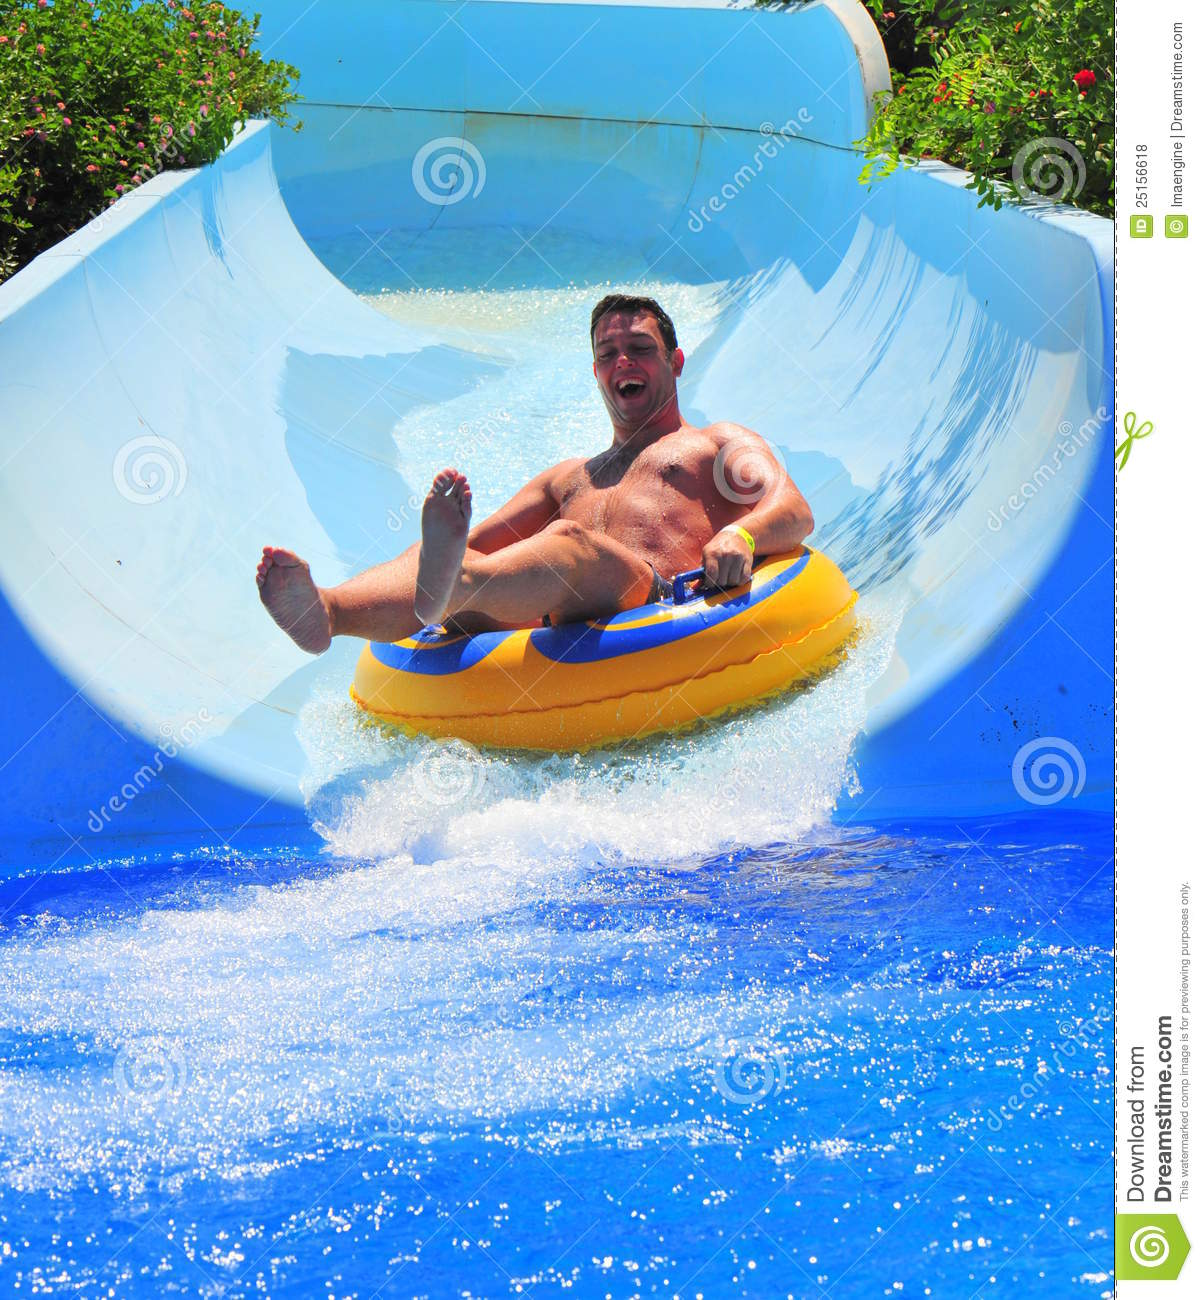 Water Slide At The Aqua Park Sumer Fun Stock Photo Image 25156618